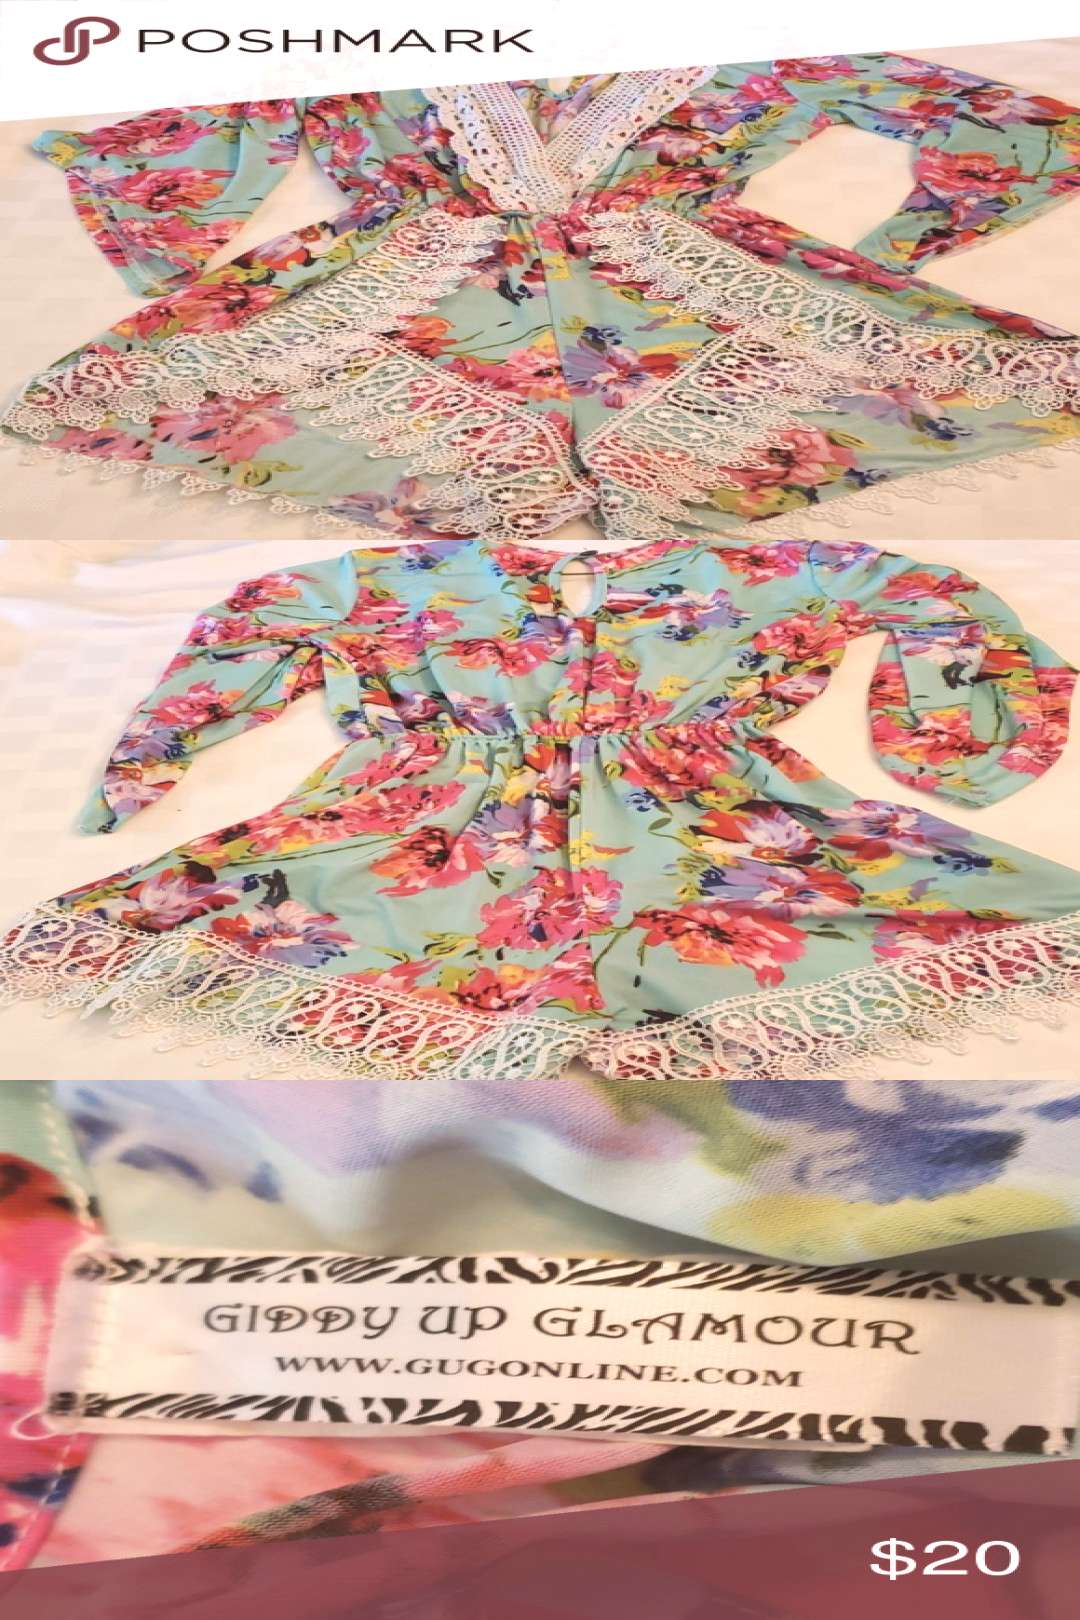 Giddy Up Glamour Gugonline Romper Sm Floral amp Lace Giddy Up Glamour Gugonline Romper Floral amp Lace